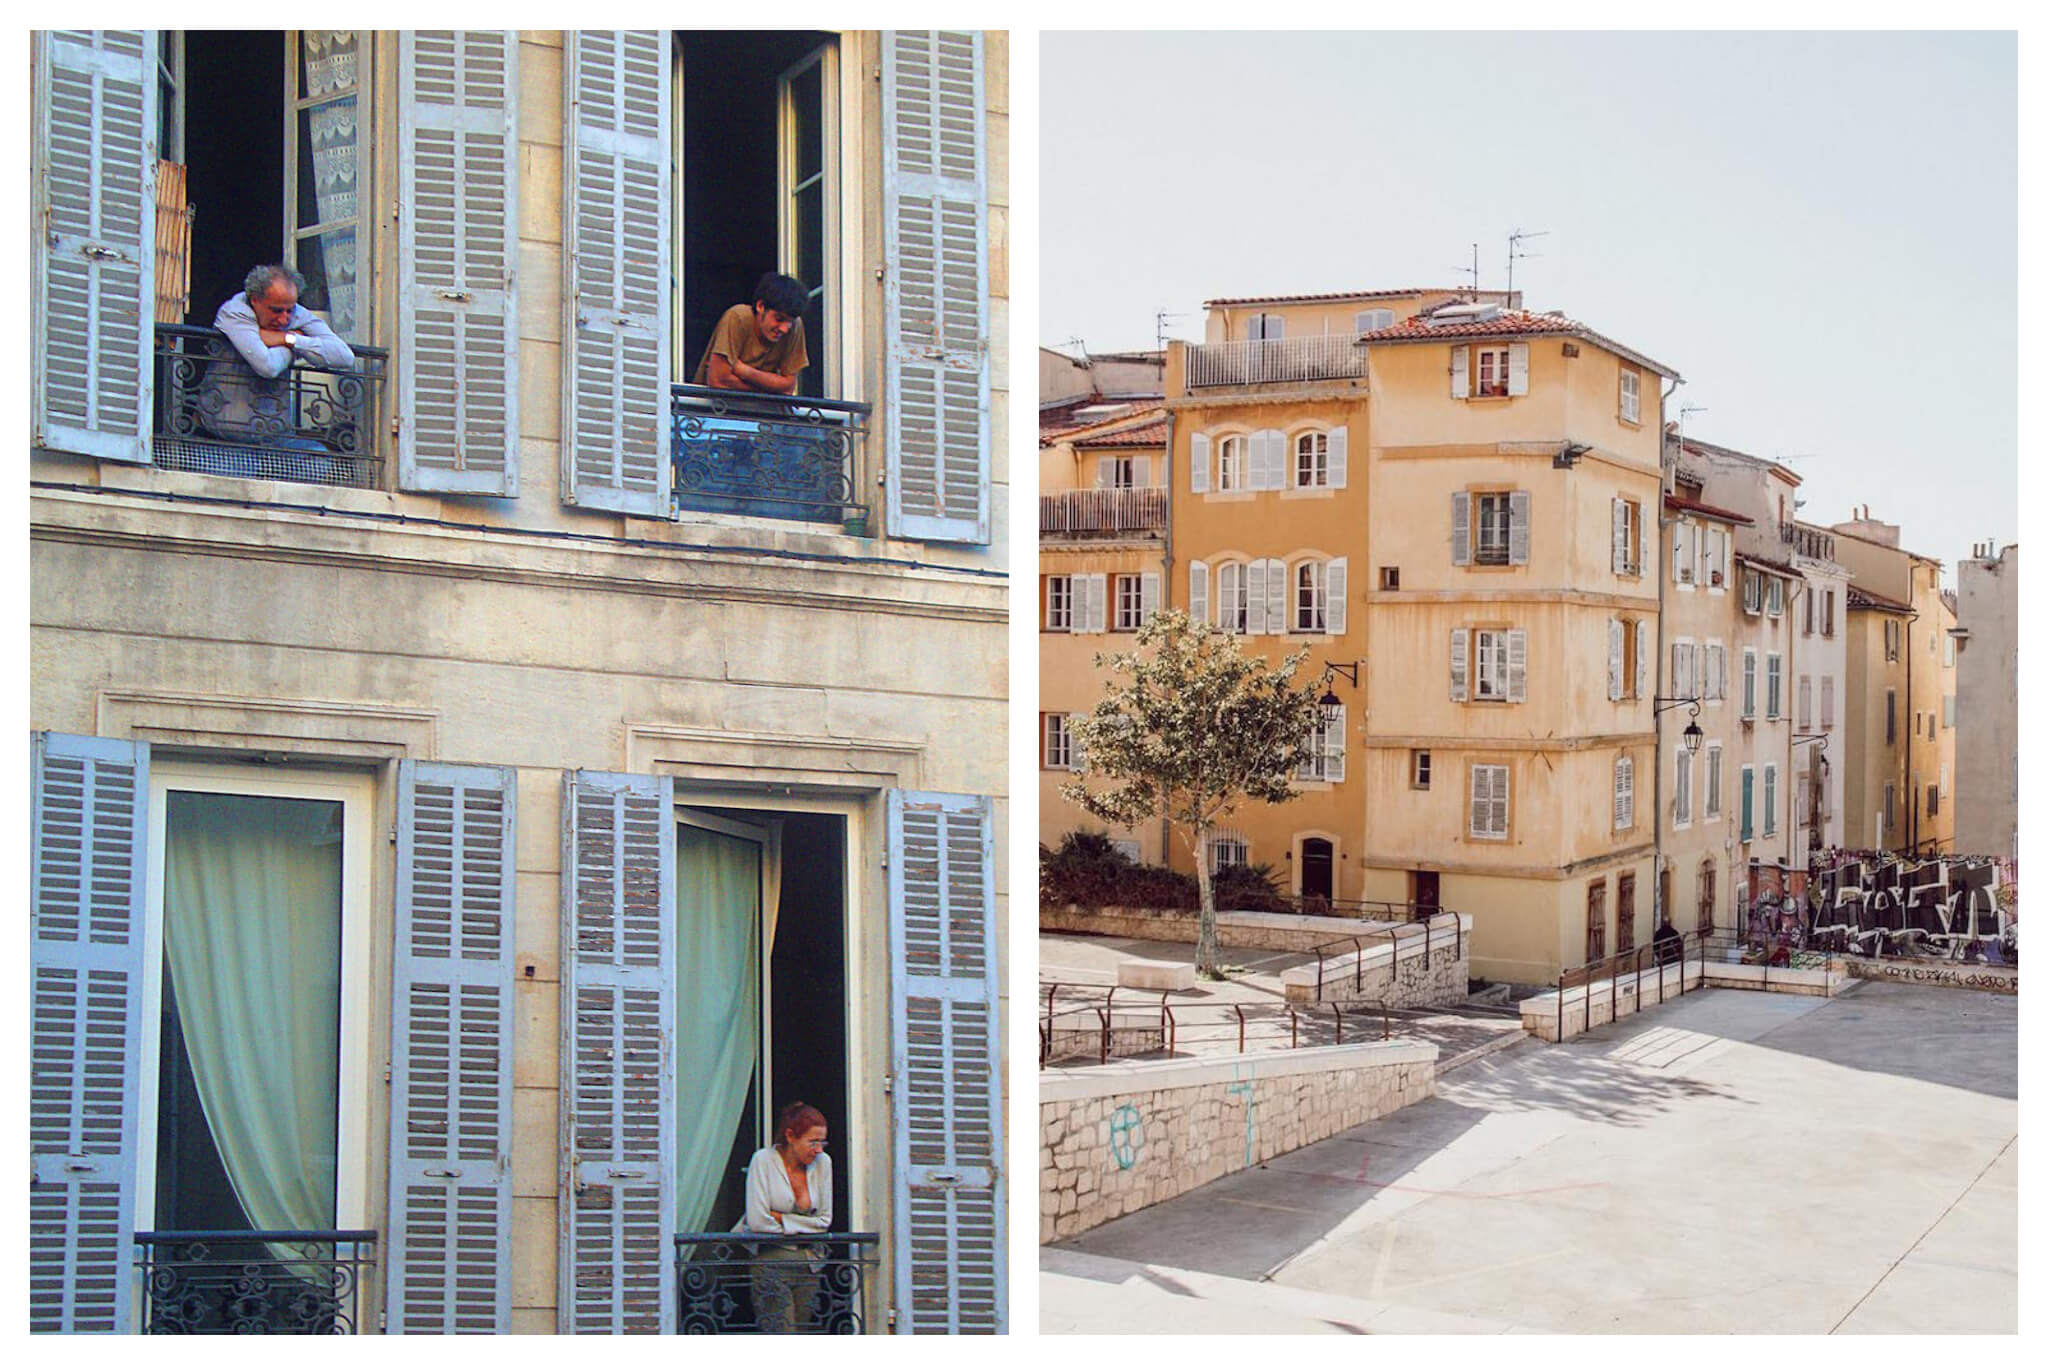 Left: Marseille residents stand at that their window sills people watching the scenes below Right: Buildings in a village in the South of France